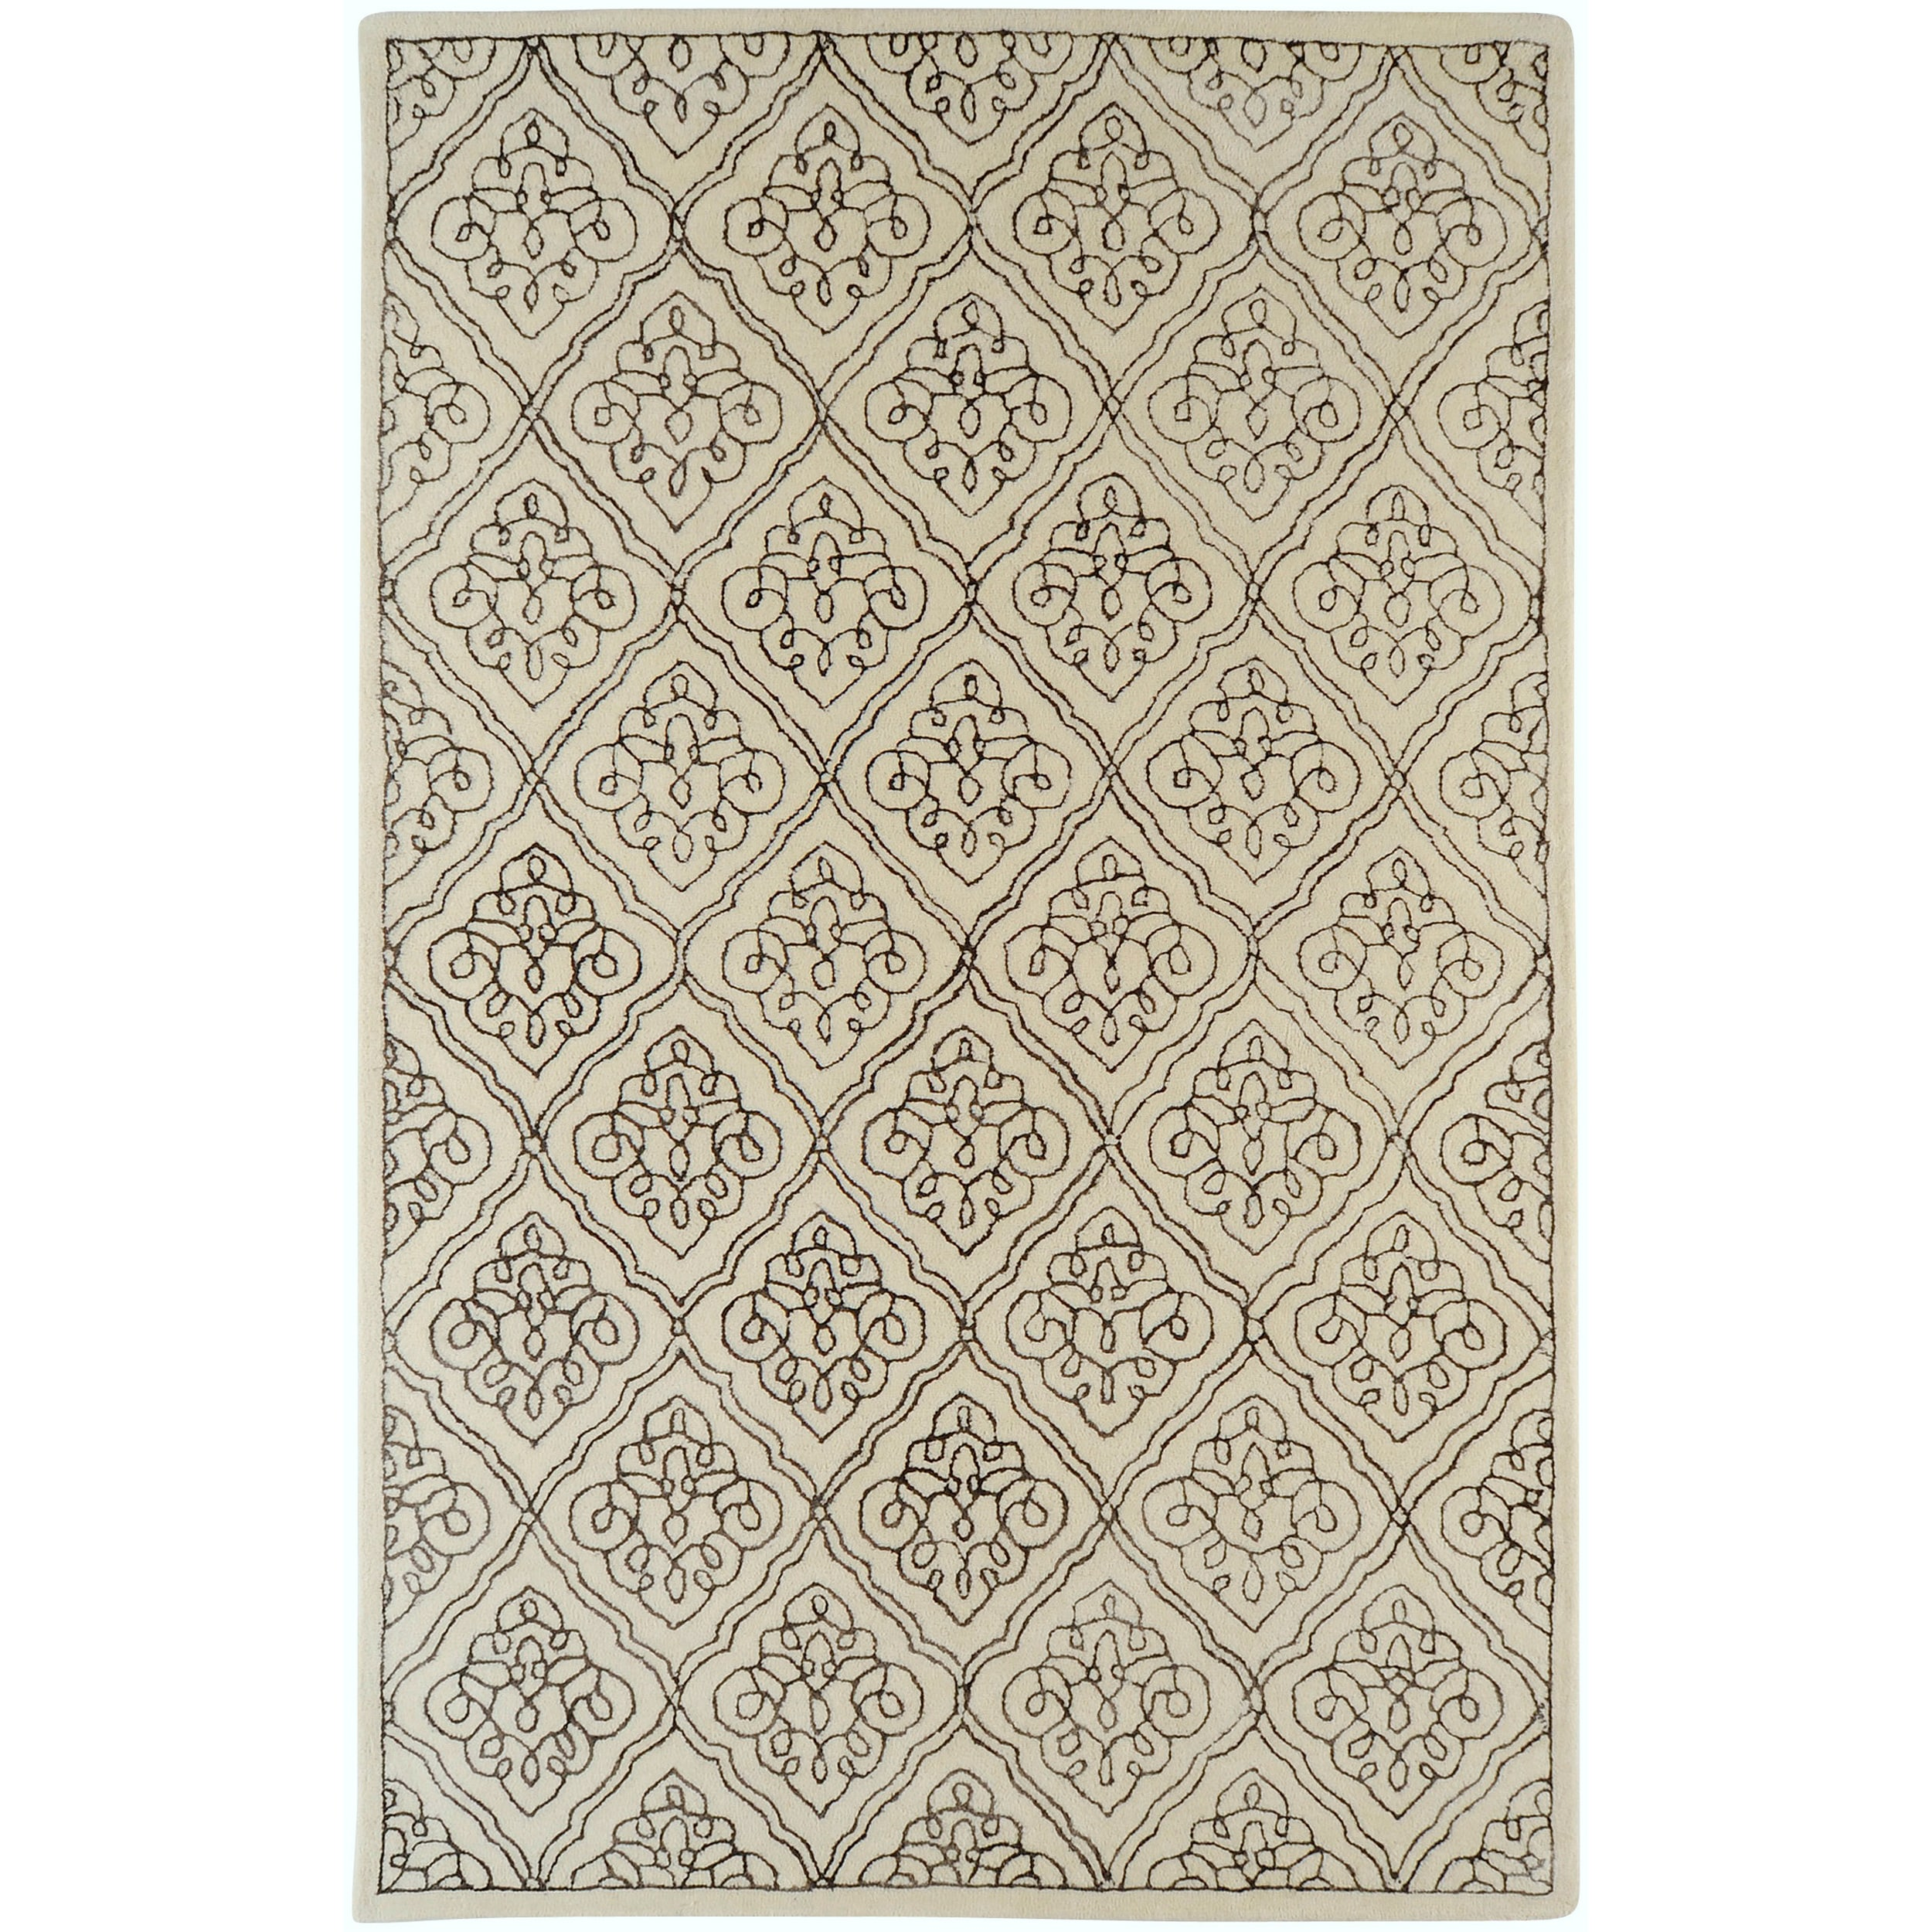 Hand-tufted Troyes Contemporary Geometric Wool Rug ( 8' x 11' )